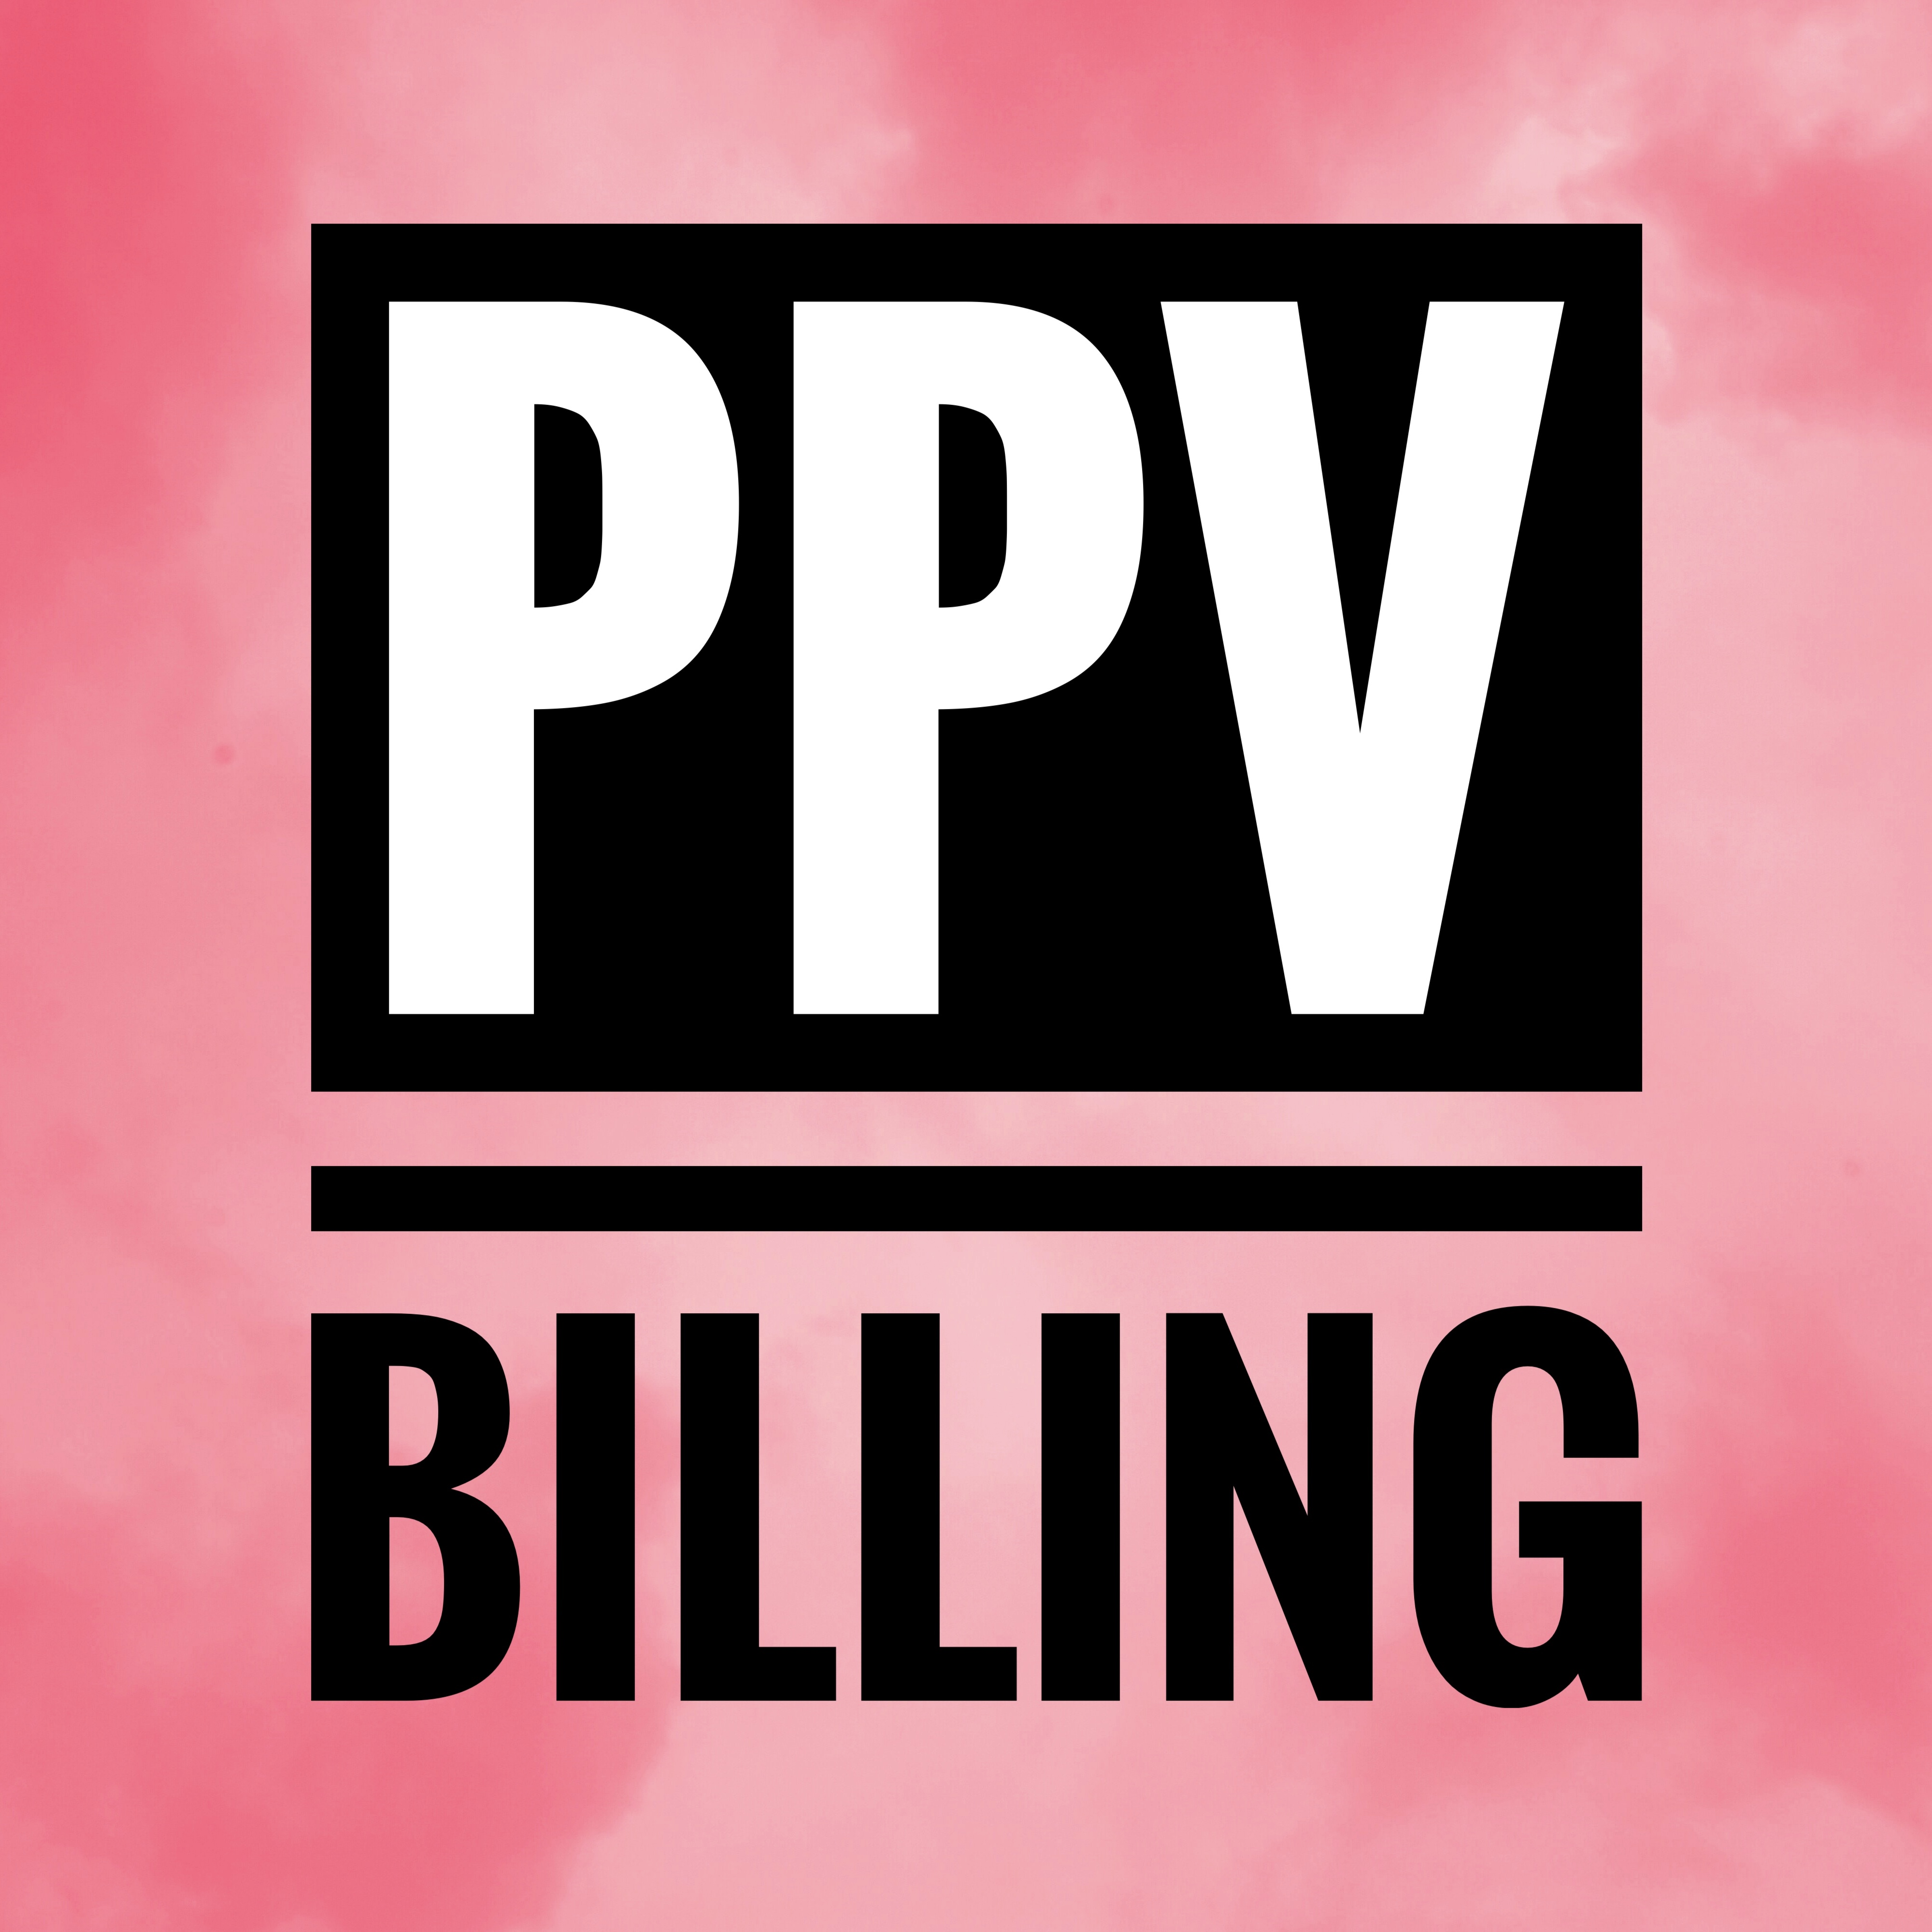 pay per view billing video chat site